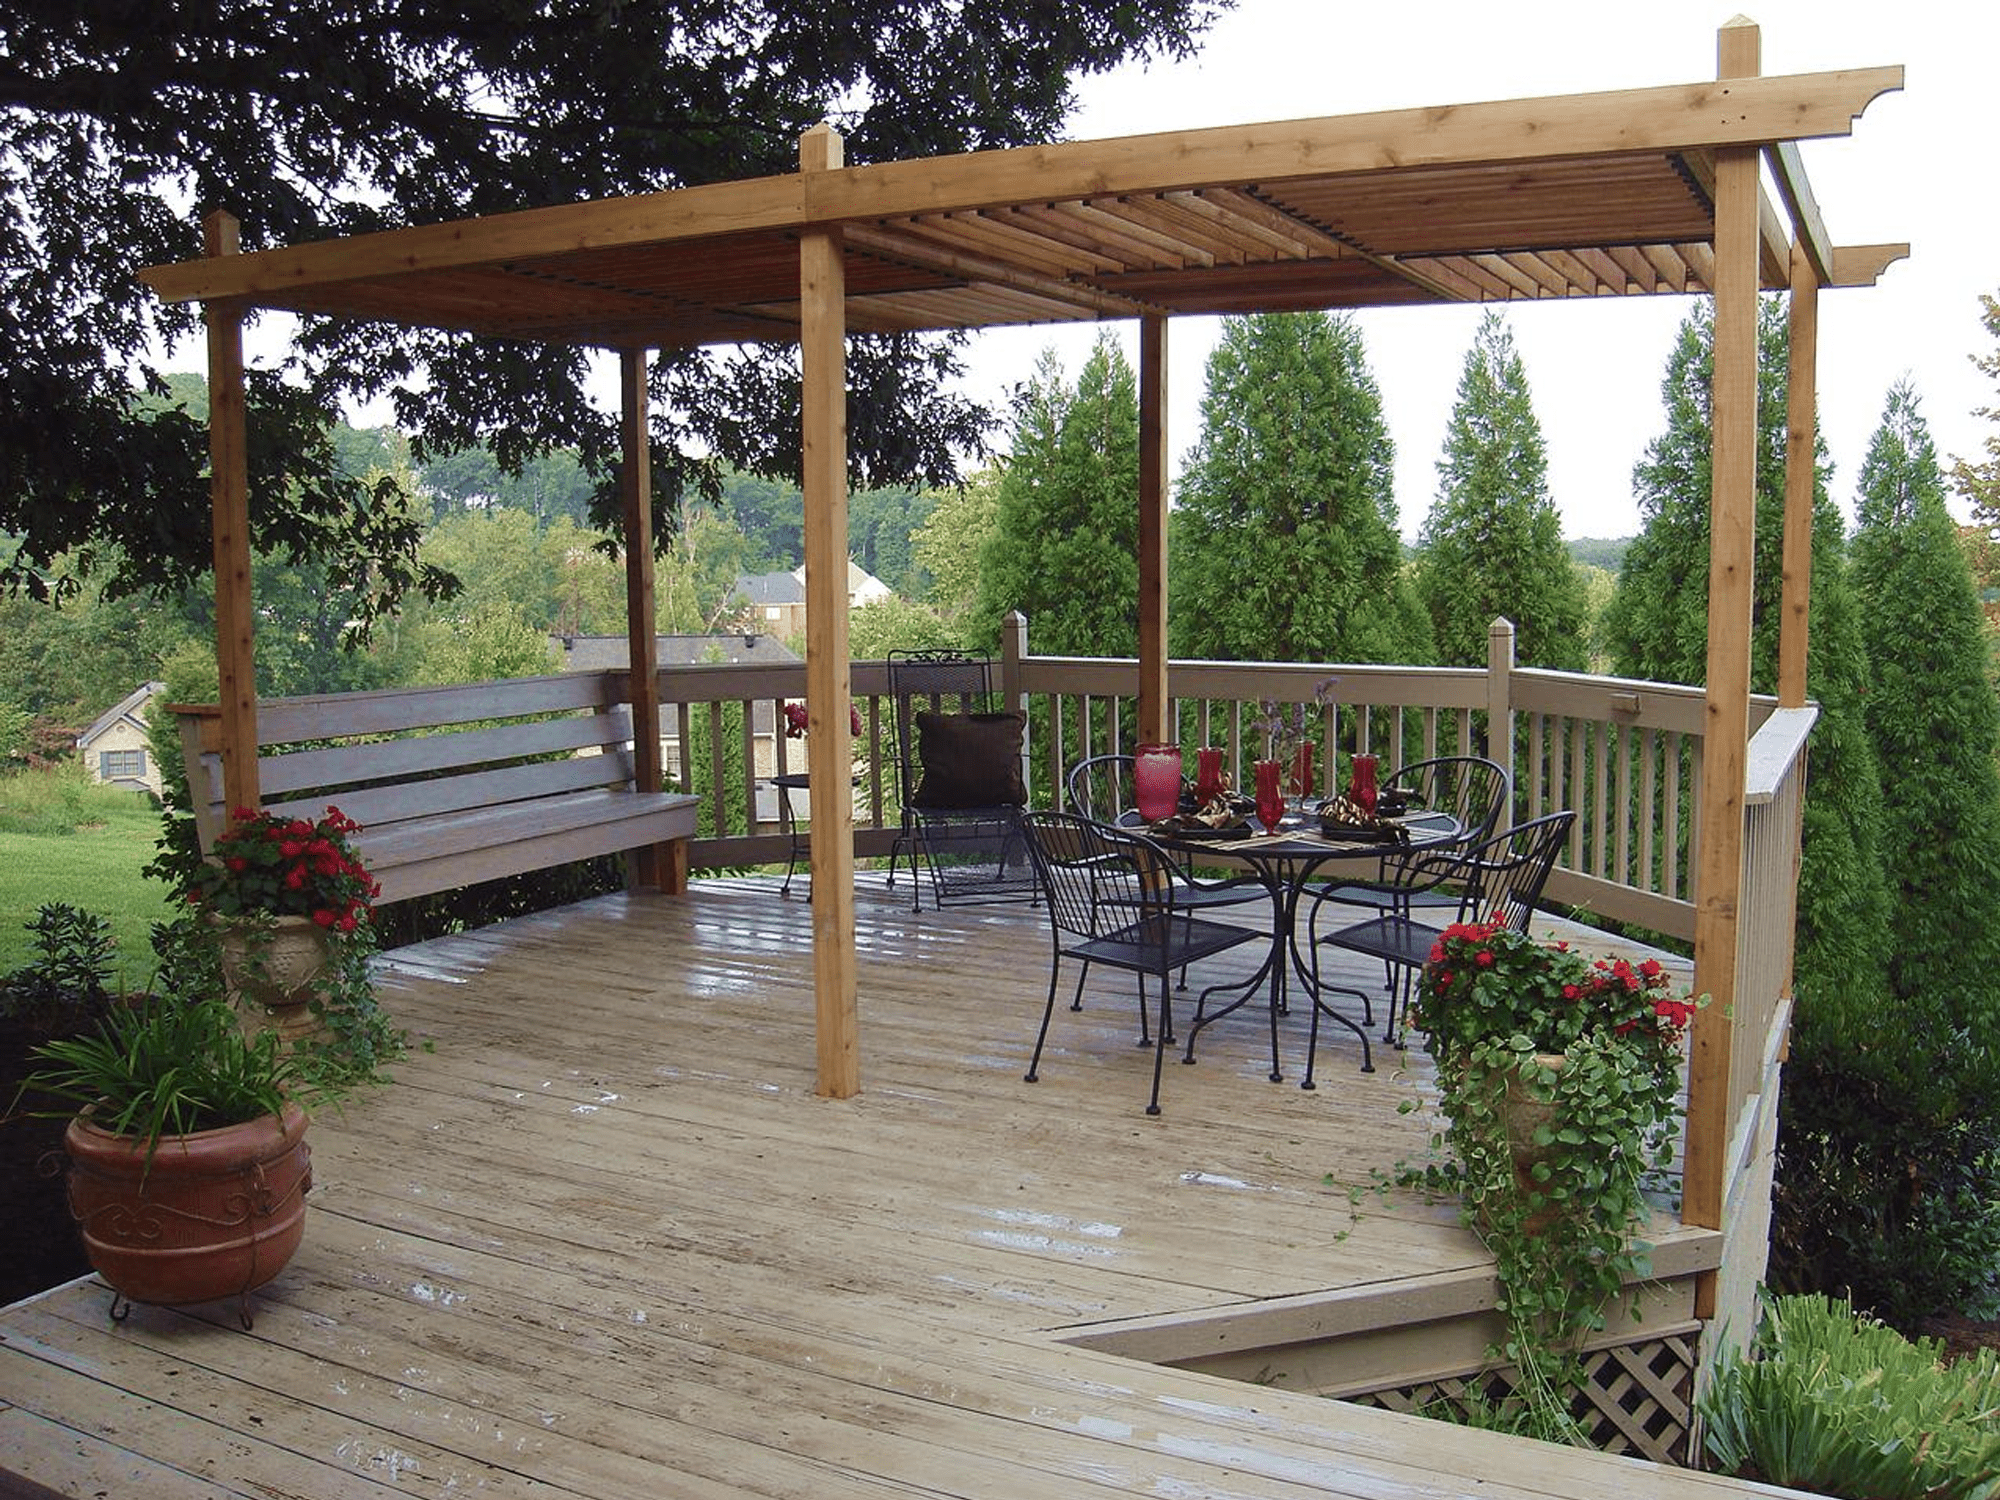 Backyard With Pergola 17 free pergola plans you can diy today